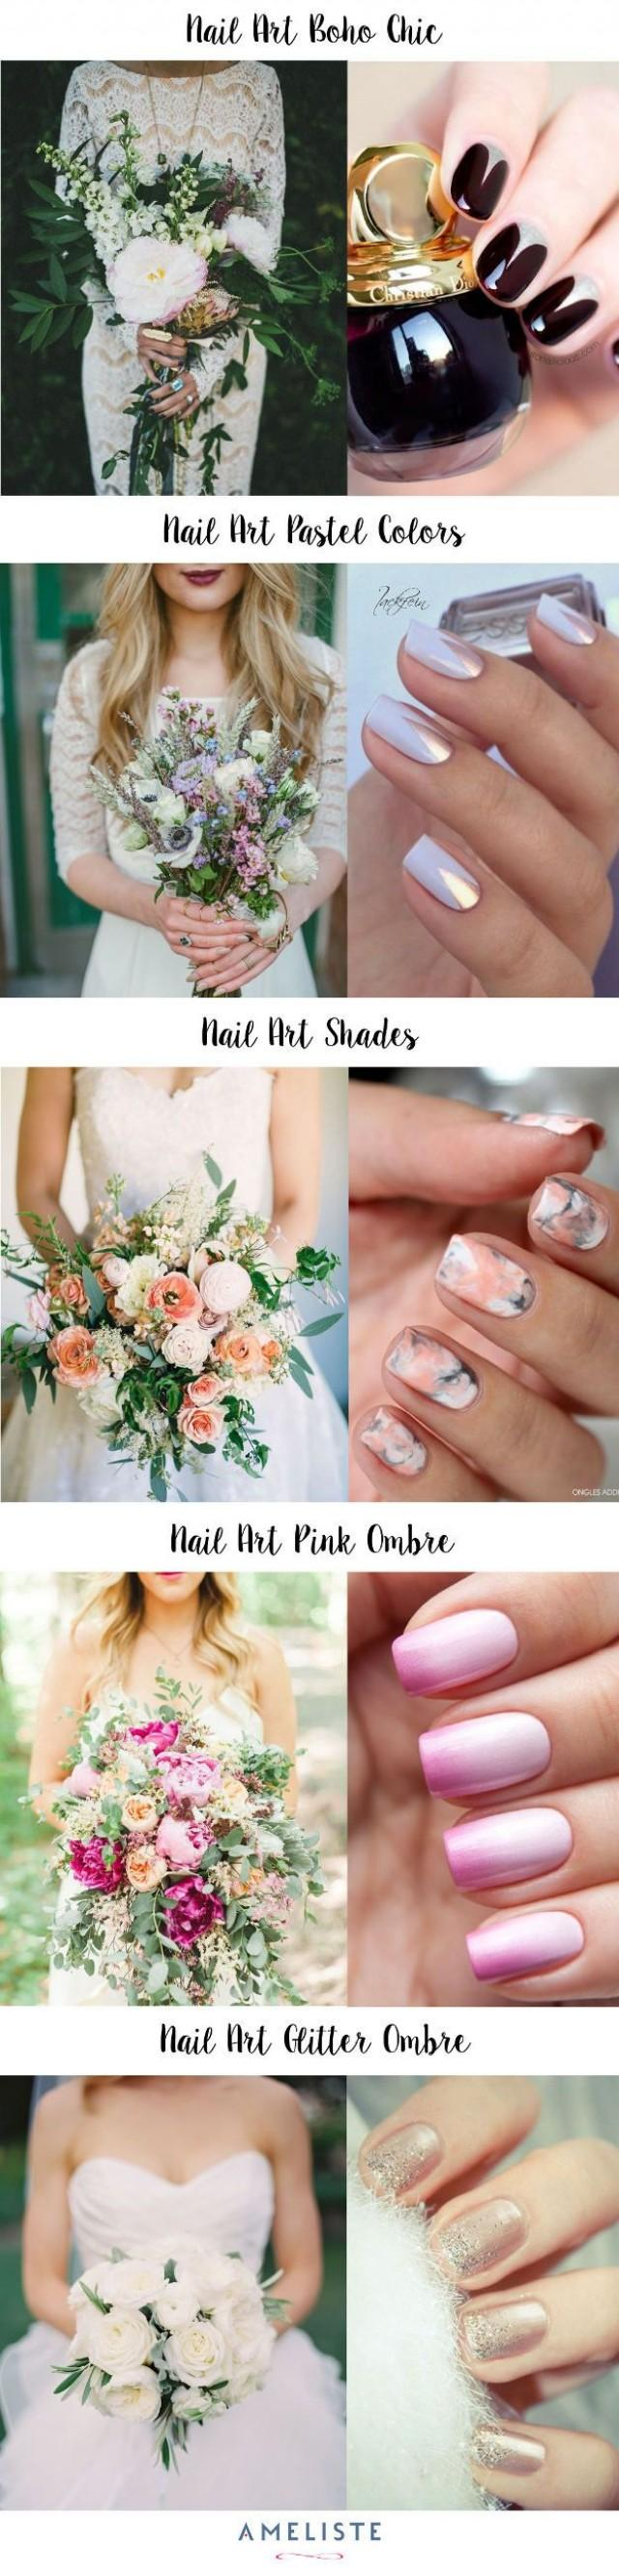 wedding photo - Manicure De Mariage : Idées De Nail Art